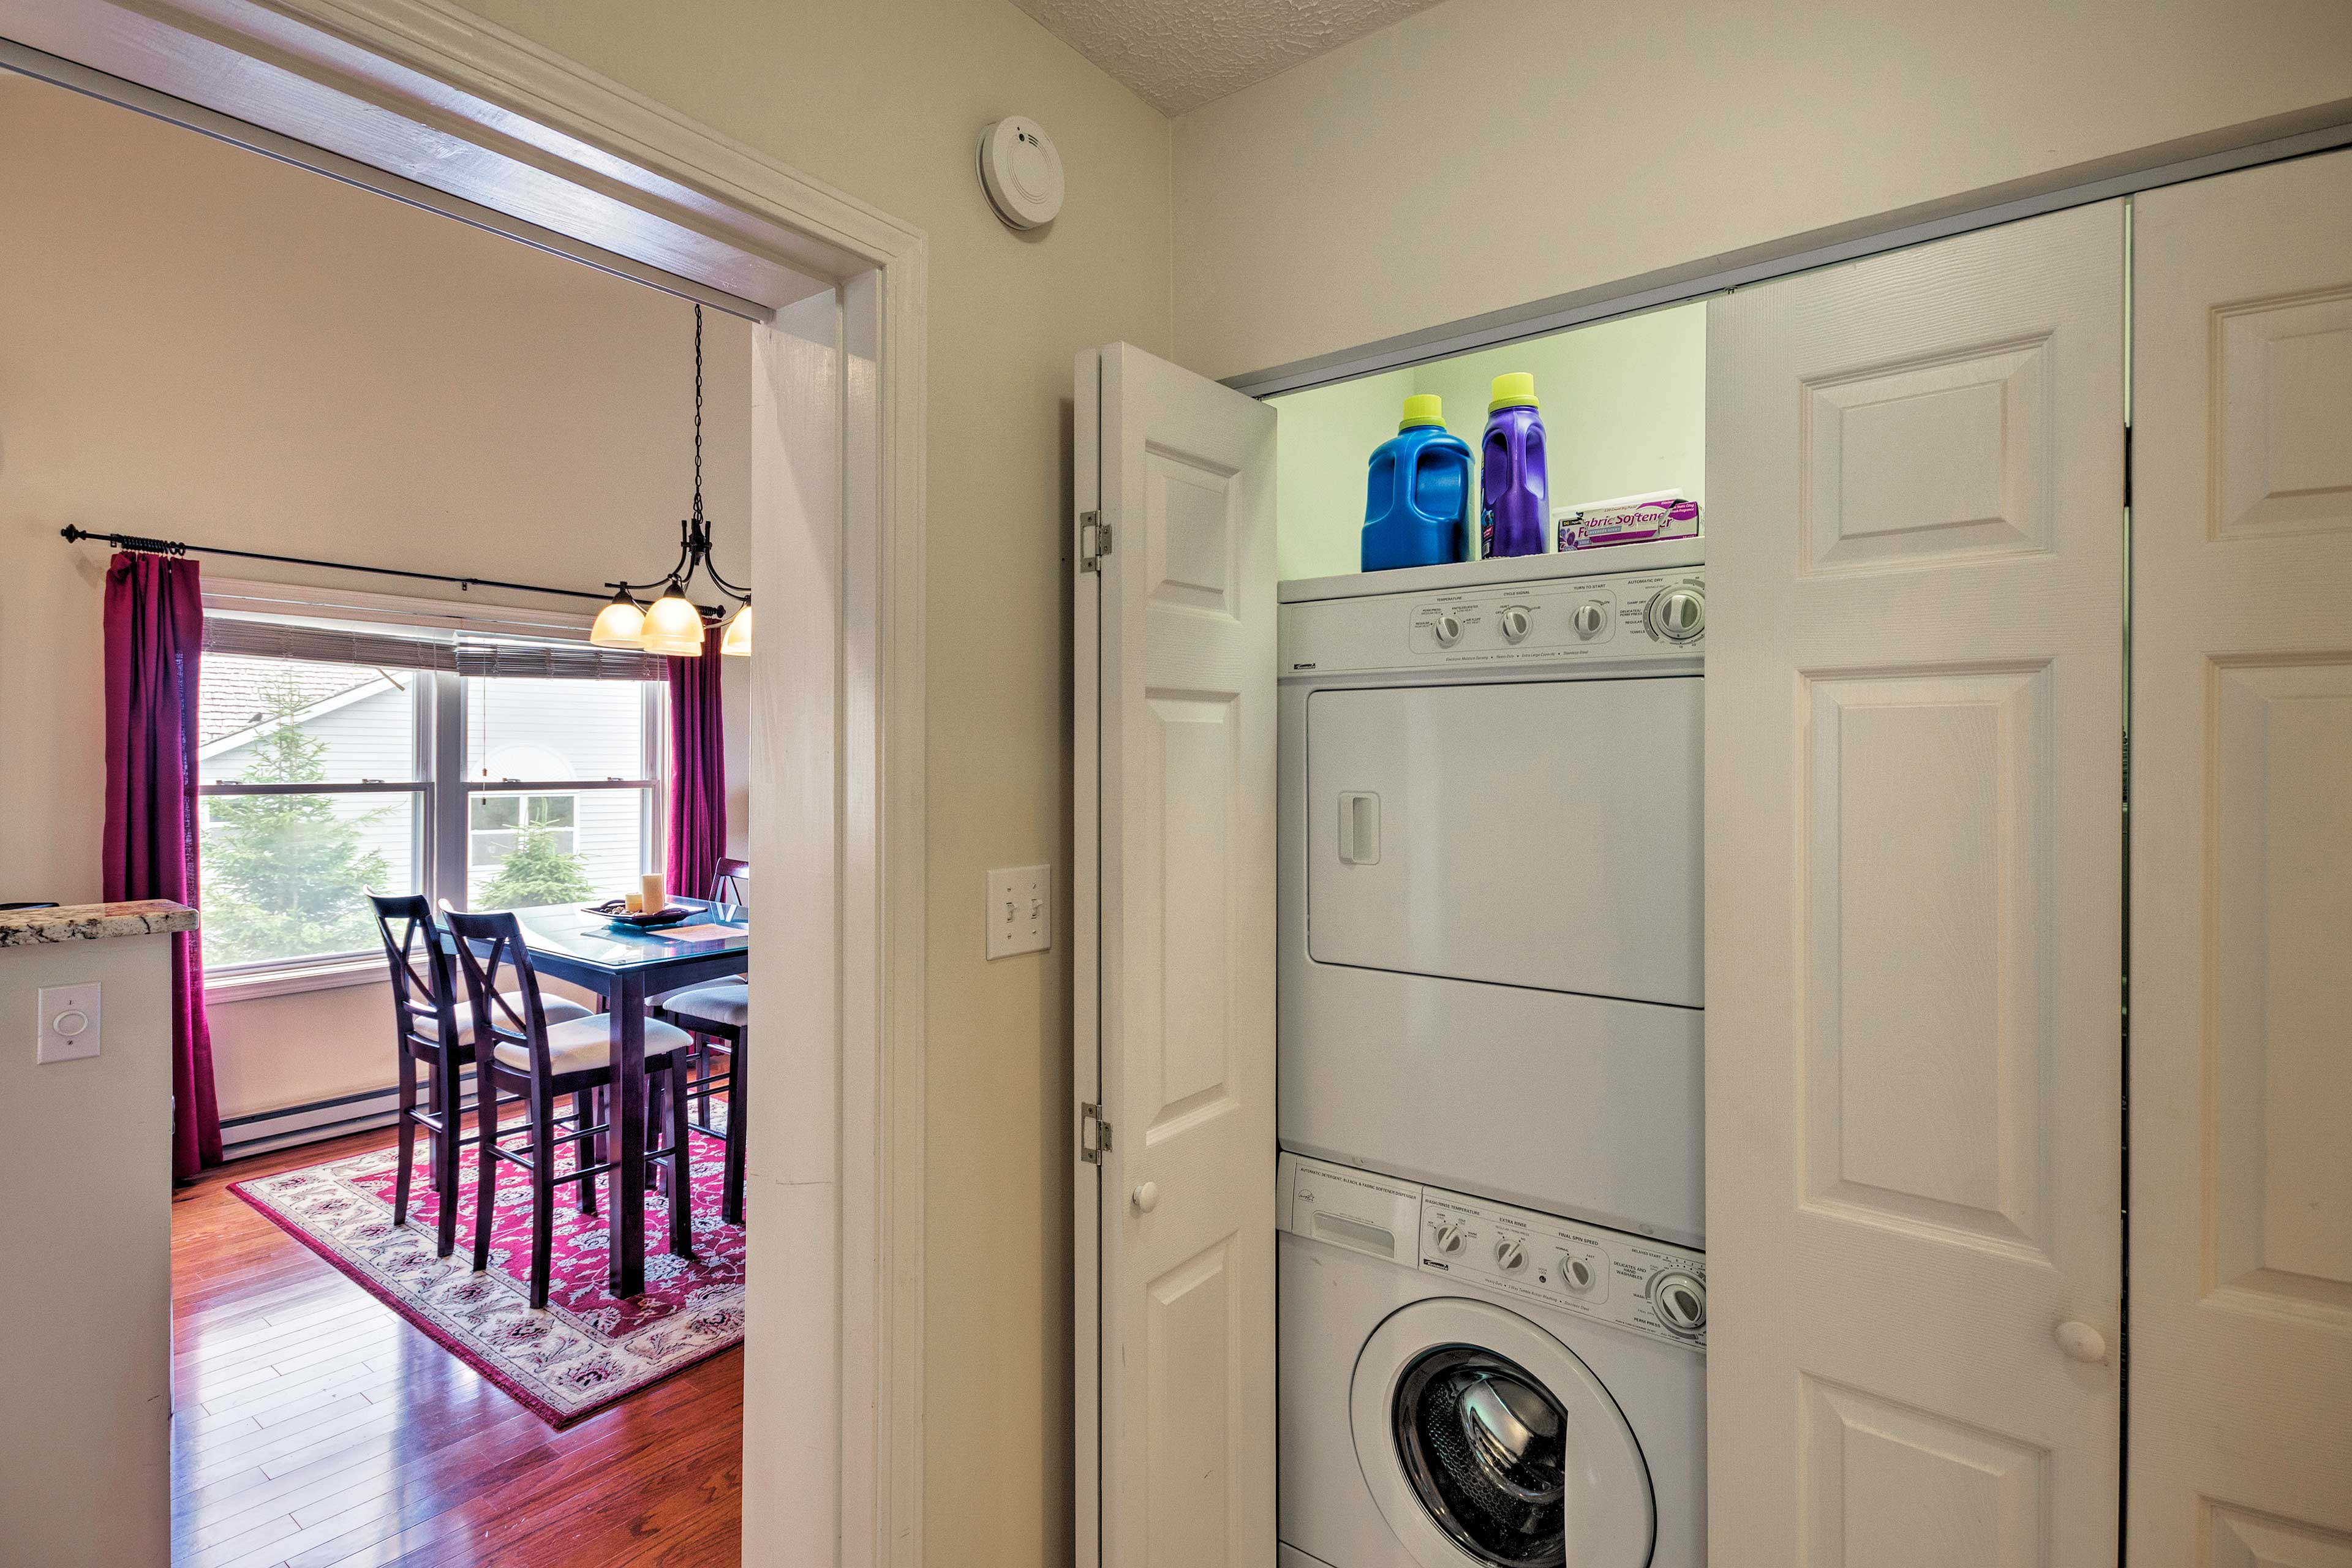 Keep your clothes fresh & clean with the laundry machines.